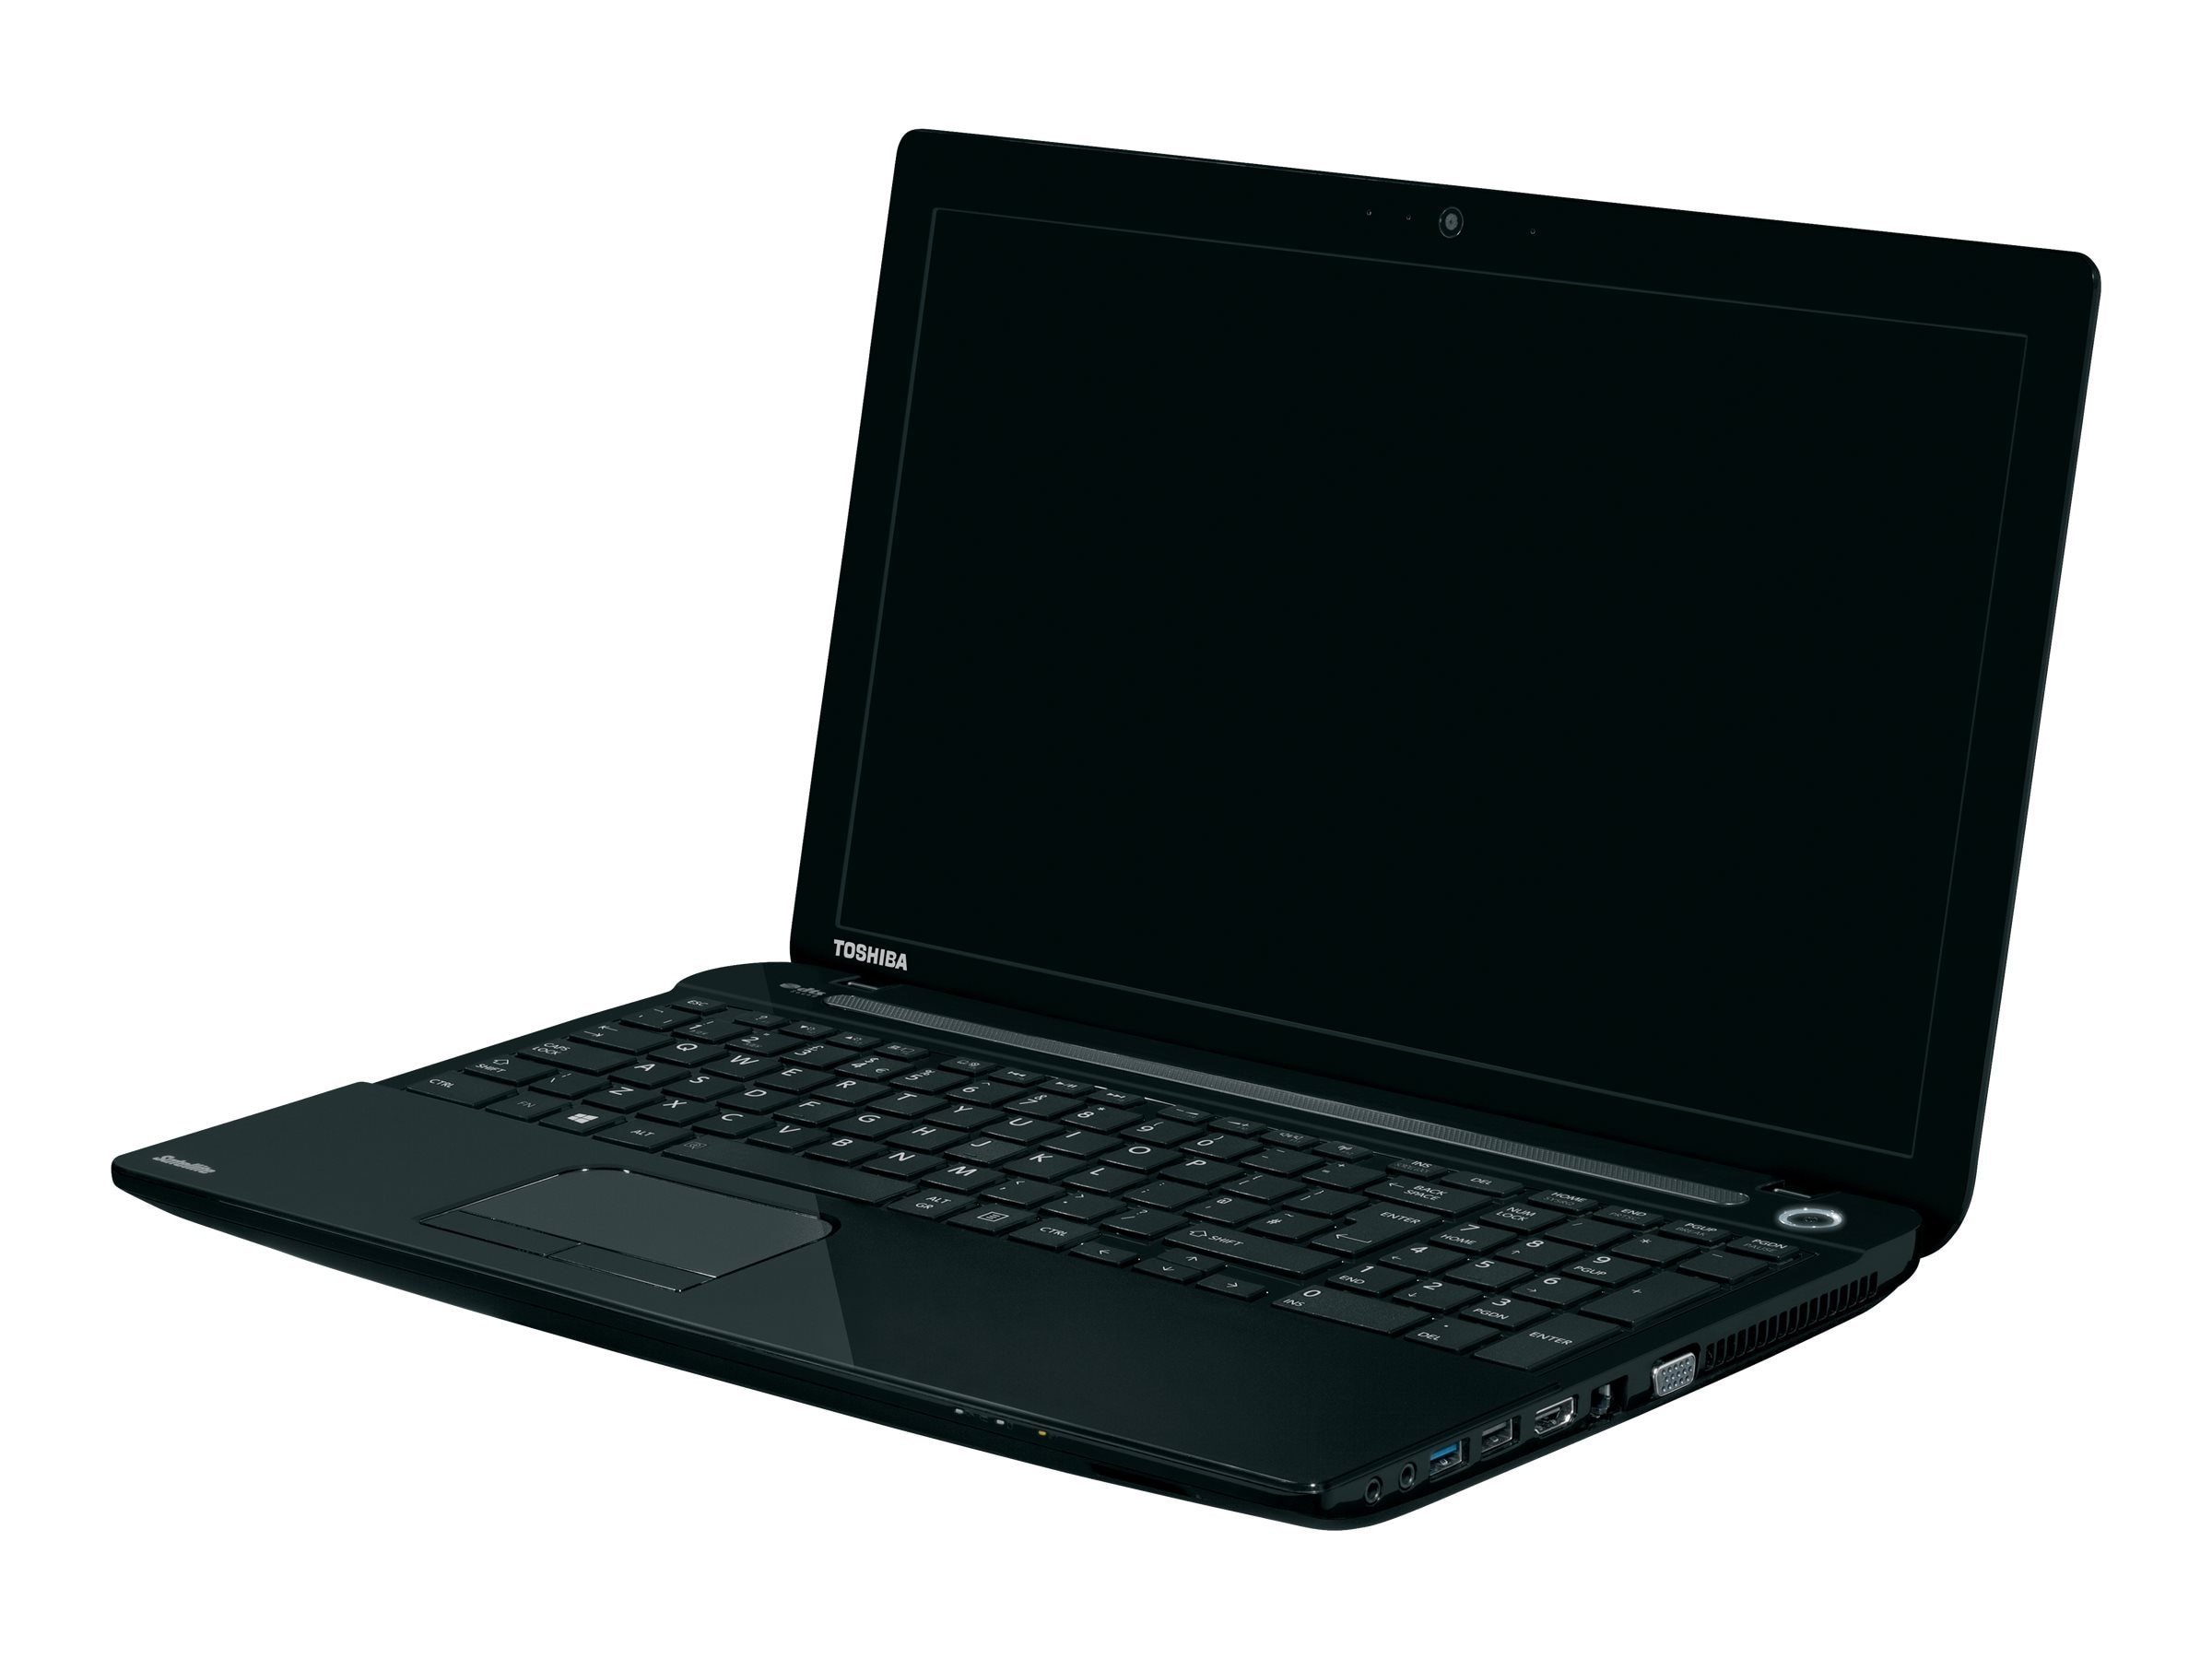 Toshiba Satellite C55DT-B5153 2.0GHz A8 15.6in display, PSCN6U-009008, 18404898, Notebooks